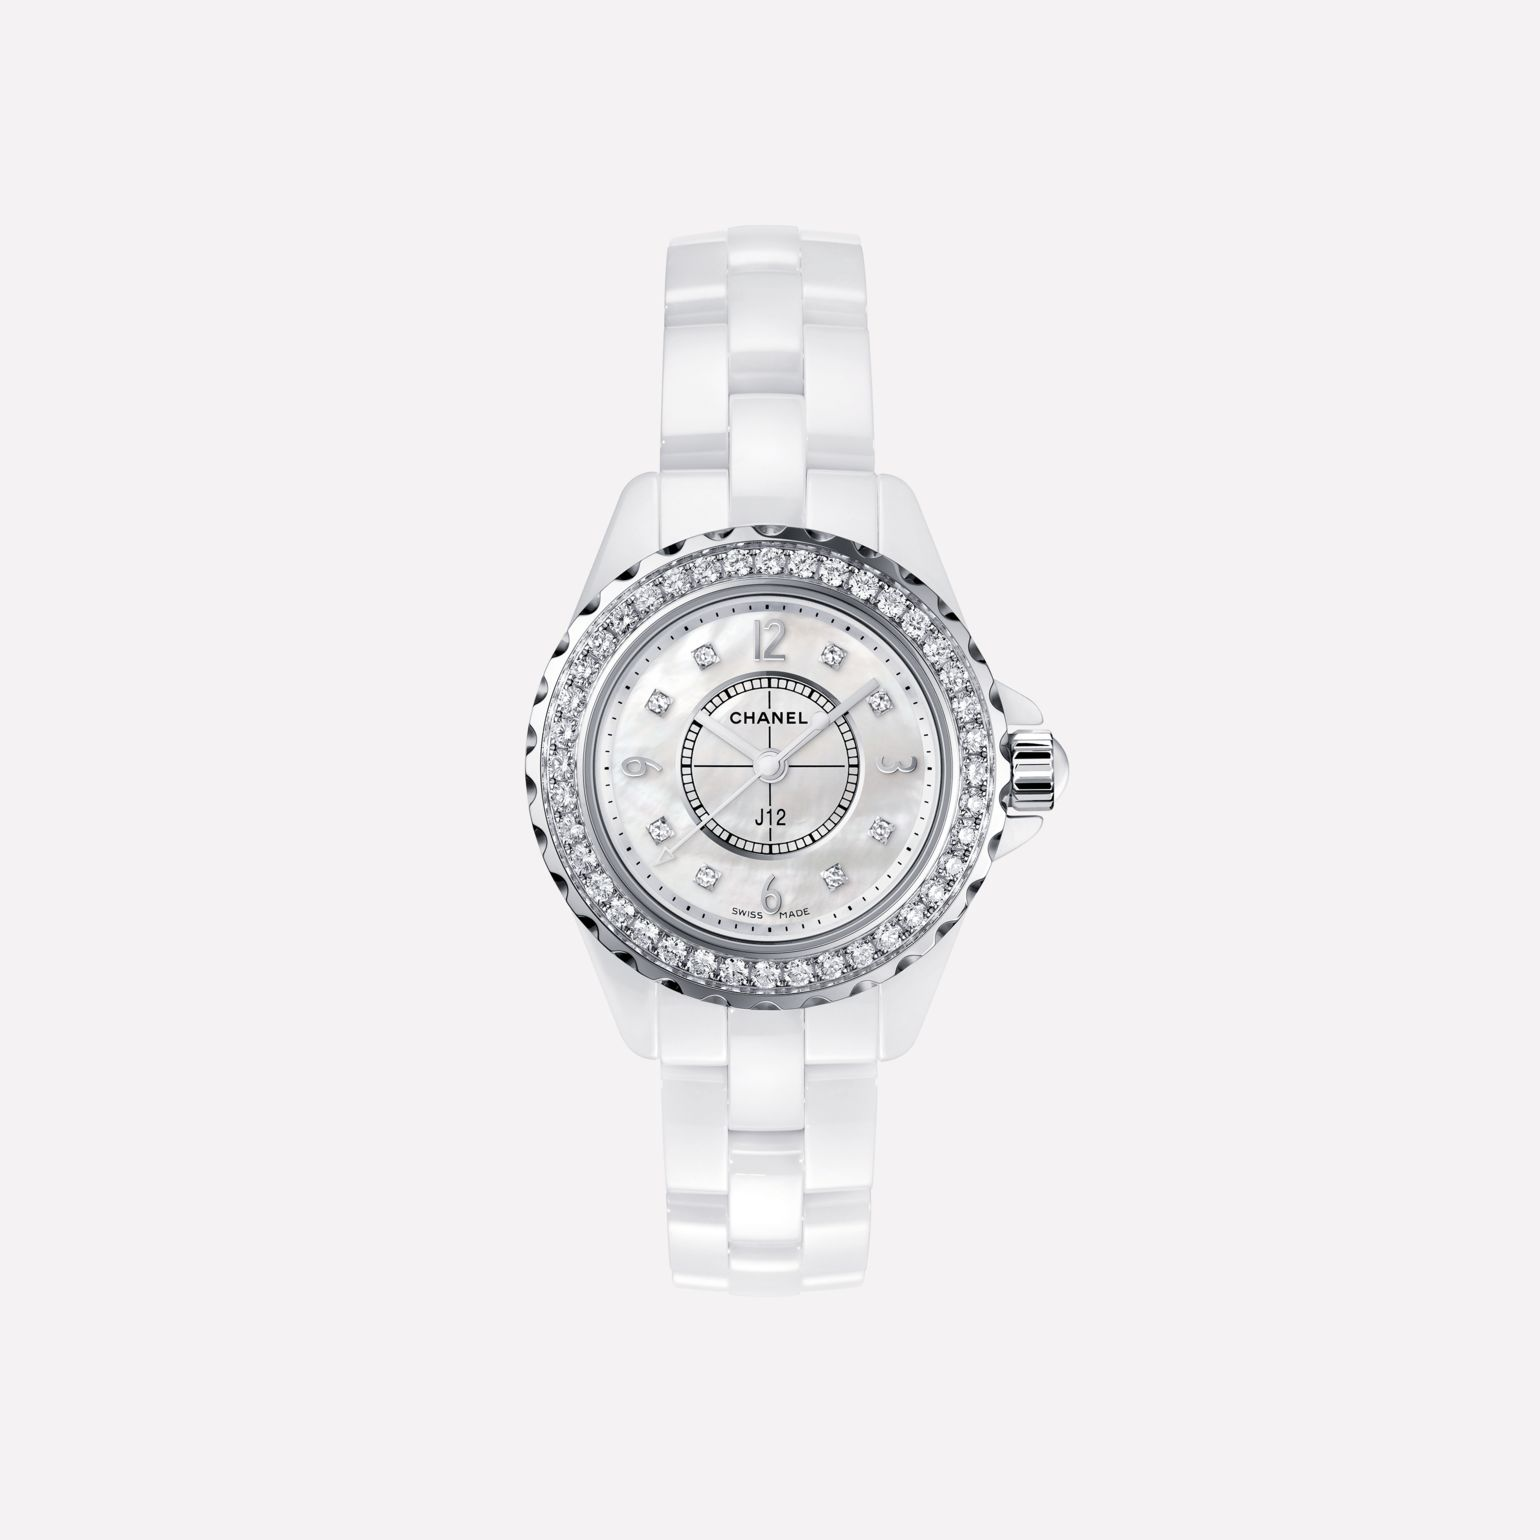 J12 White highly resistant ceramic and steel, brilliant-cut diamond bezel and indicators, white mother-of-pearl dial